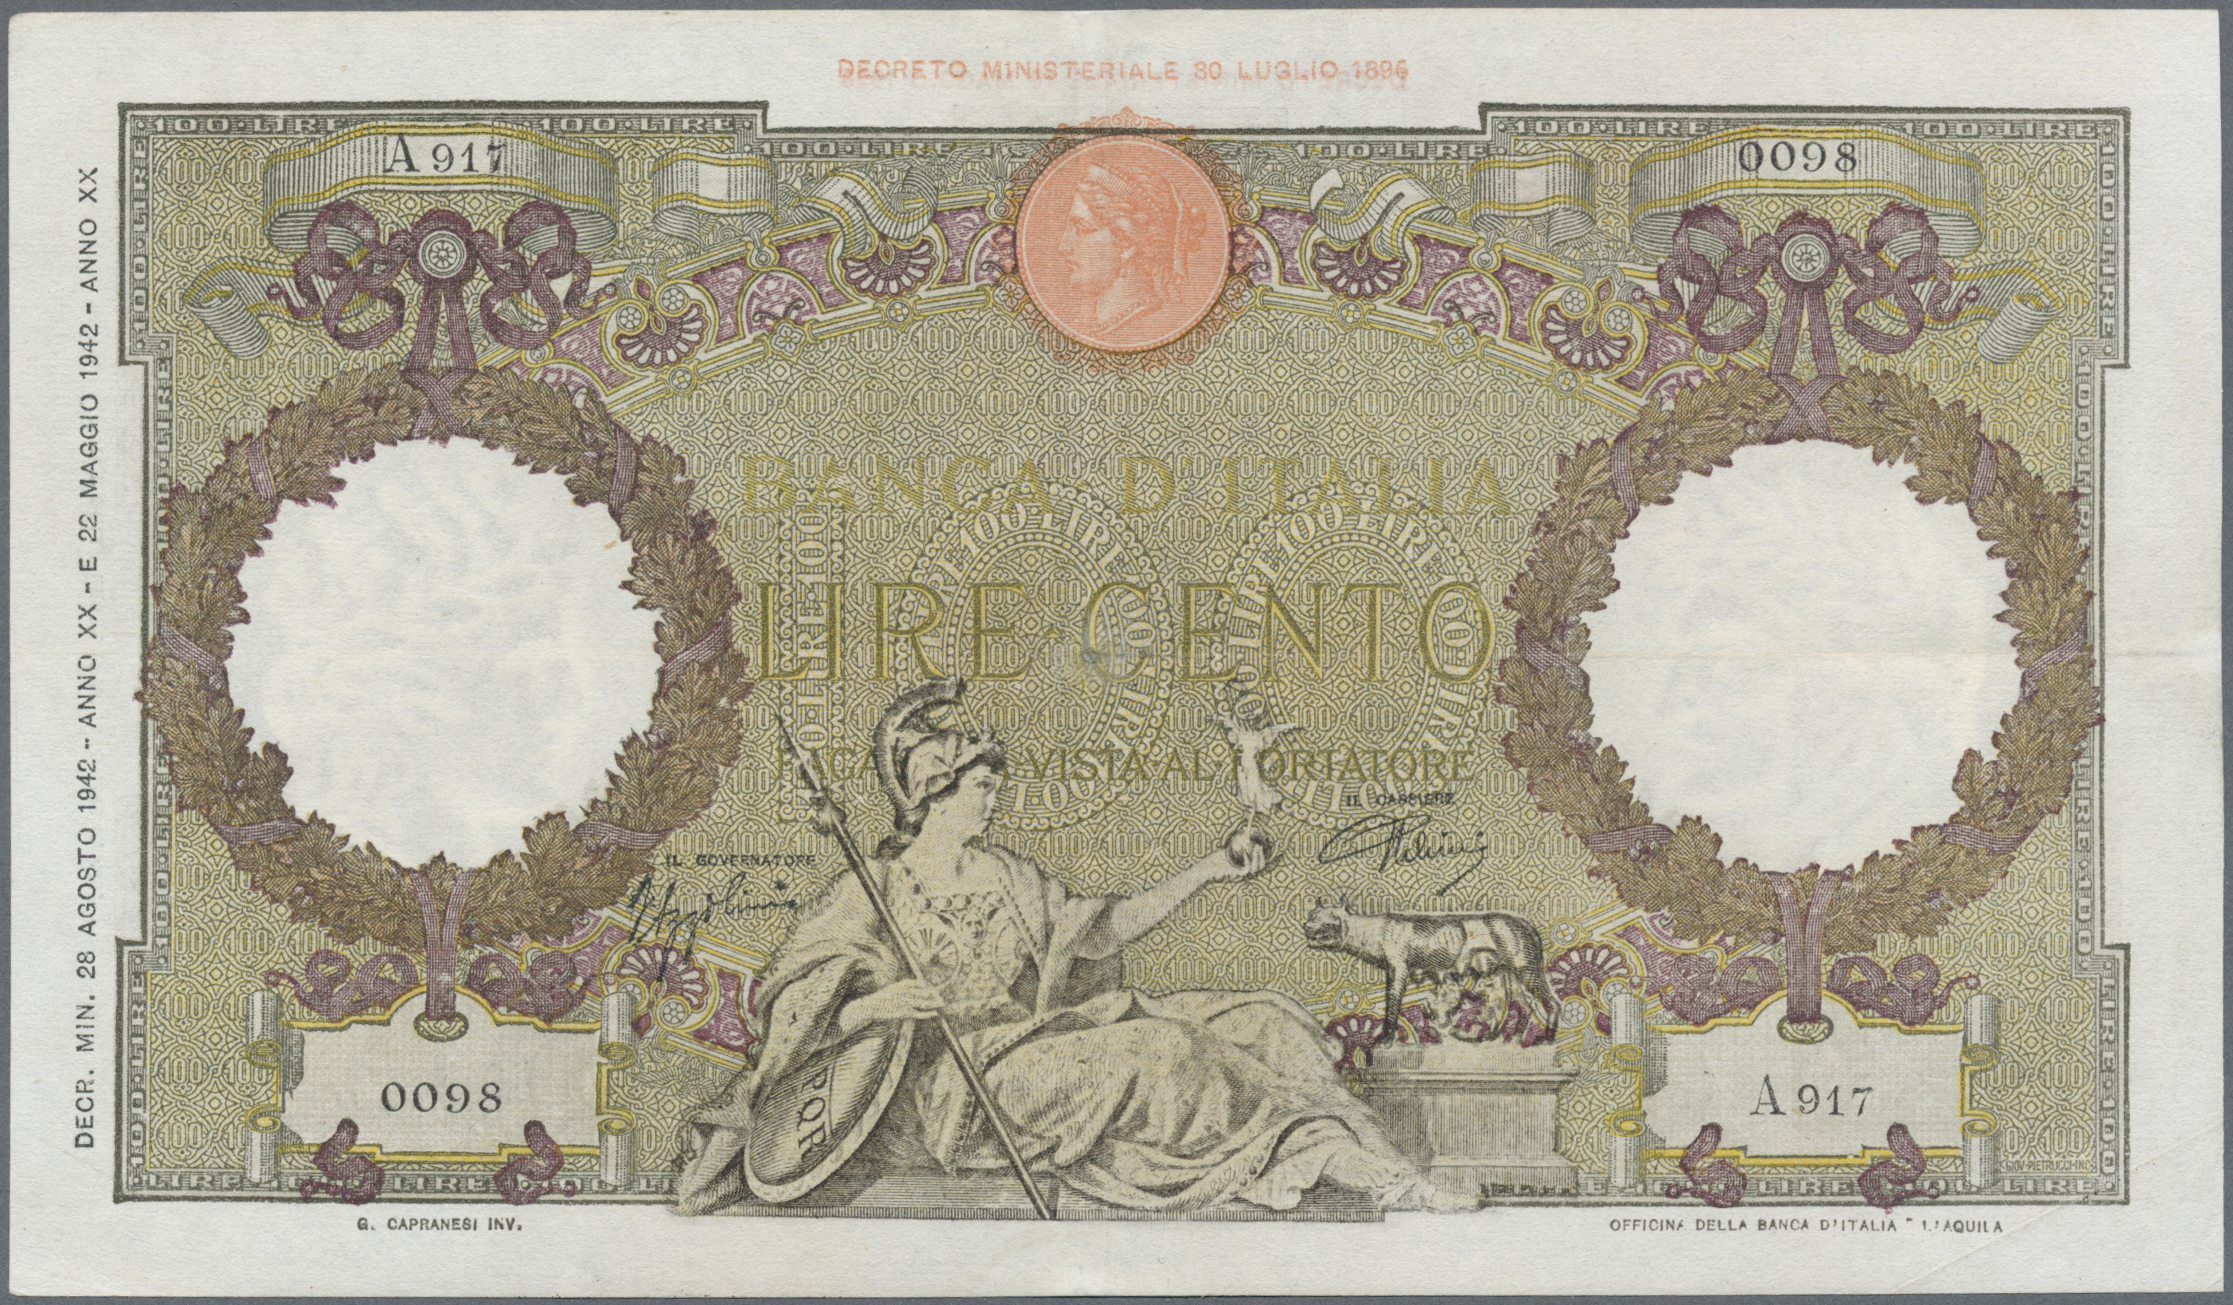 Lot 00455 - Italy / Italien | Banknoten  -  Auktionshaus Christoph Gärtner GmbH & Co. KG Sale #48 The Banknotes